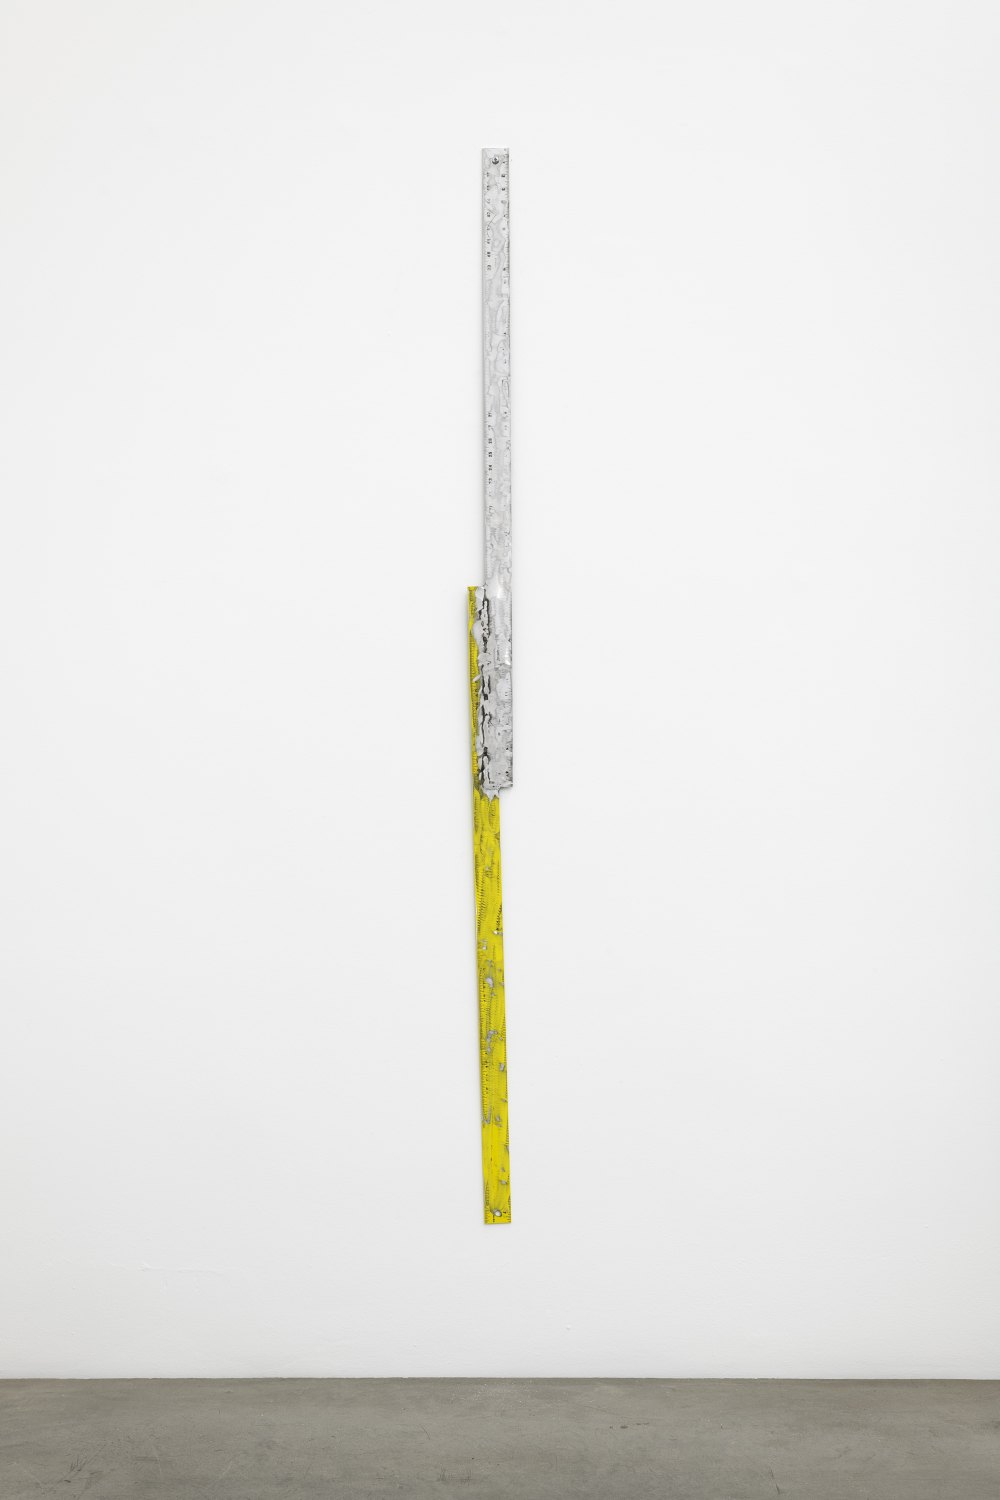 Win McCarthy Untitled (Conjoined Line), 2021 205 x 8.5 cm Welded aluminum rulers